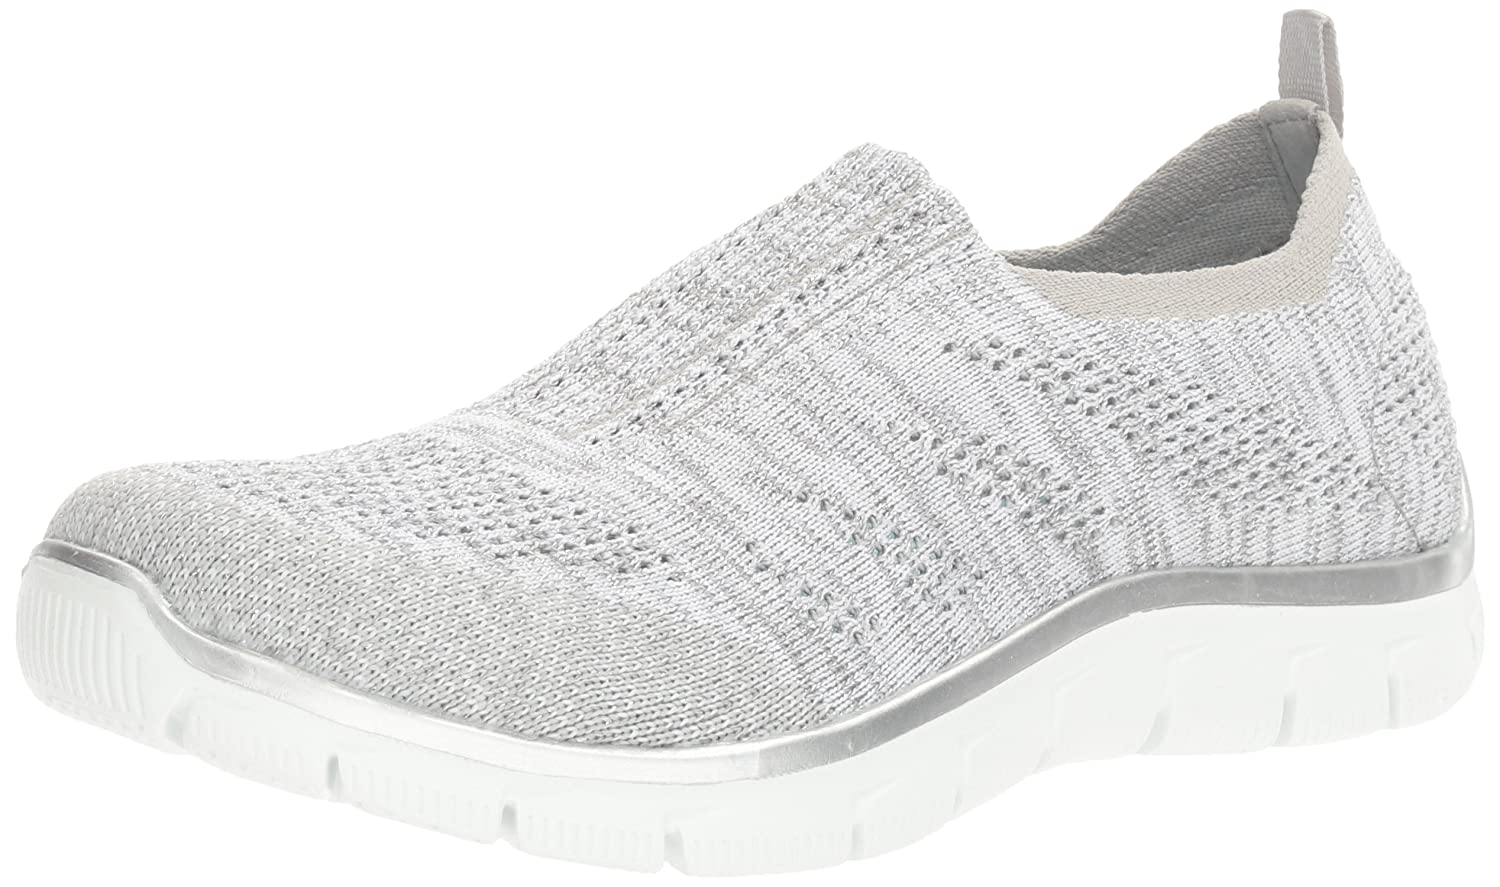 Skechers Damen Slipper Empire Round Up Grau/Silber  40 EU|Gysl Grey/Silver